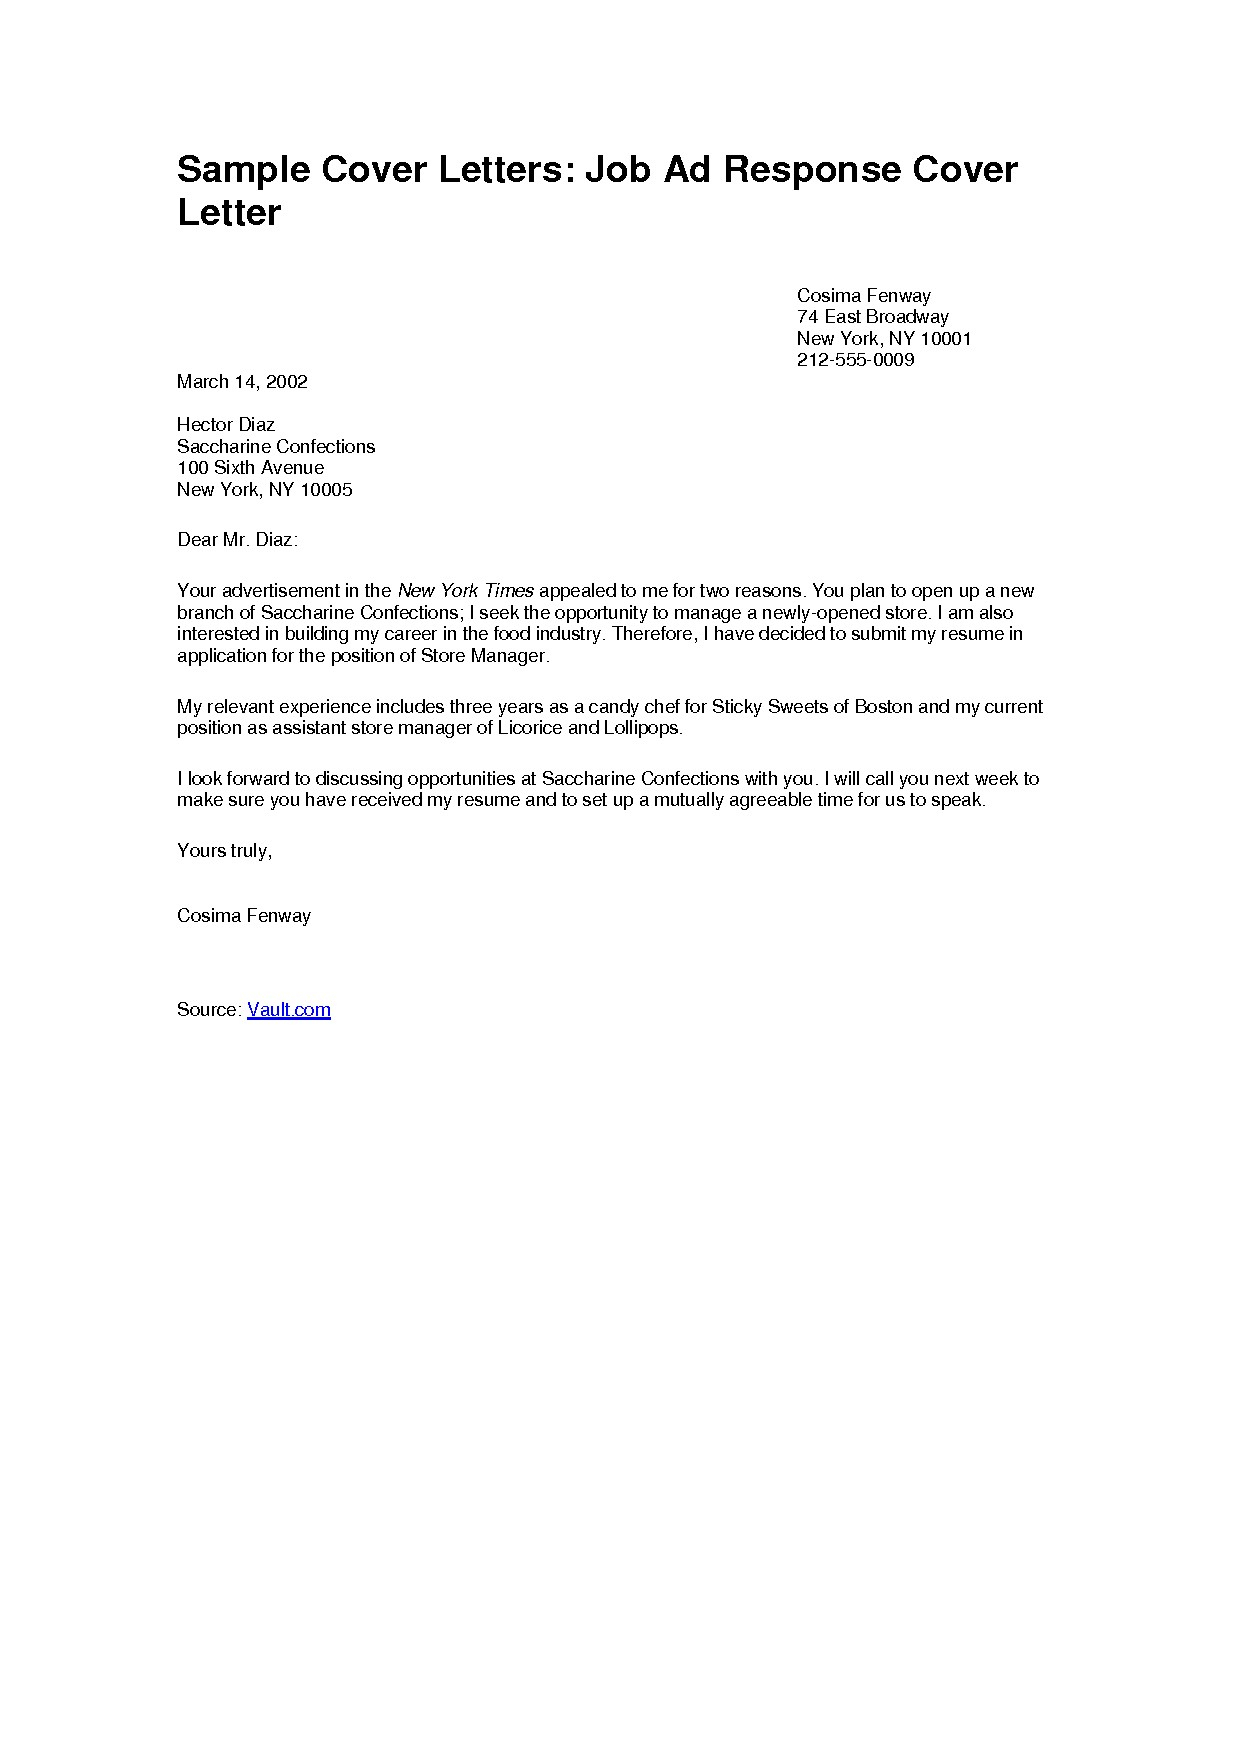 Employment Cover Letter Template - Samples Of Job Cover Letters Acurnamedia